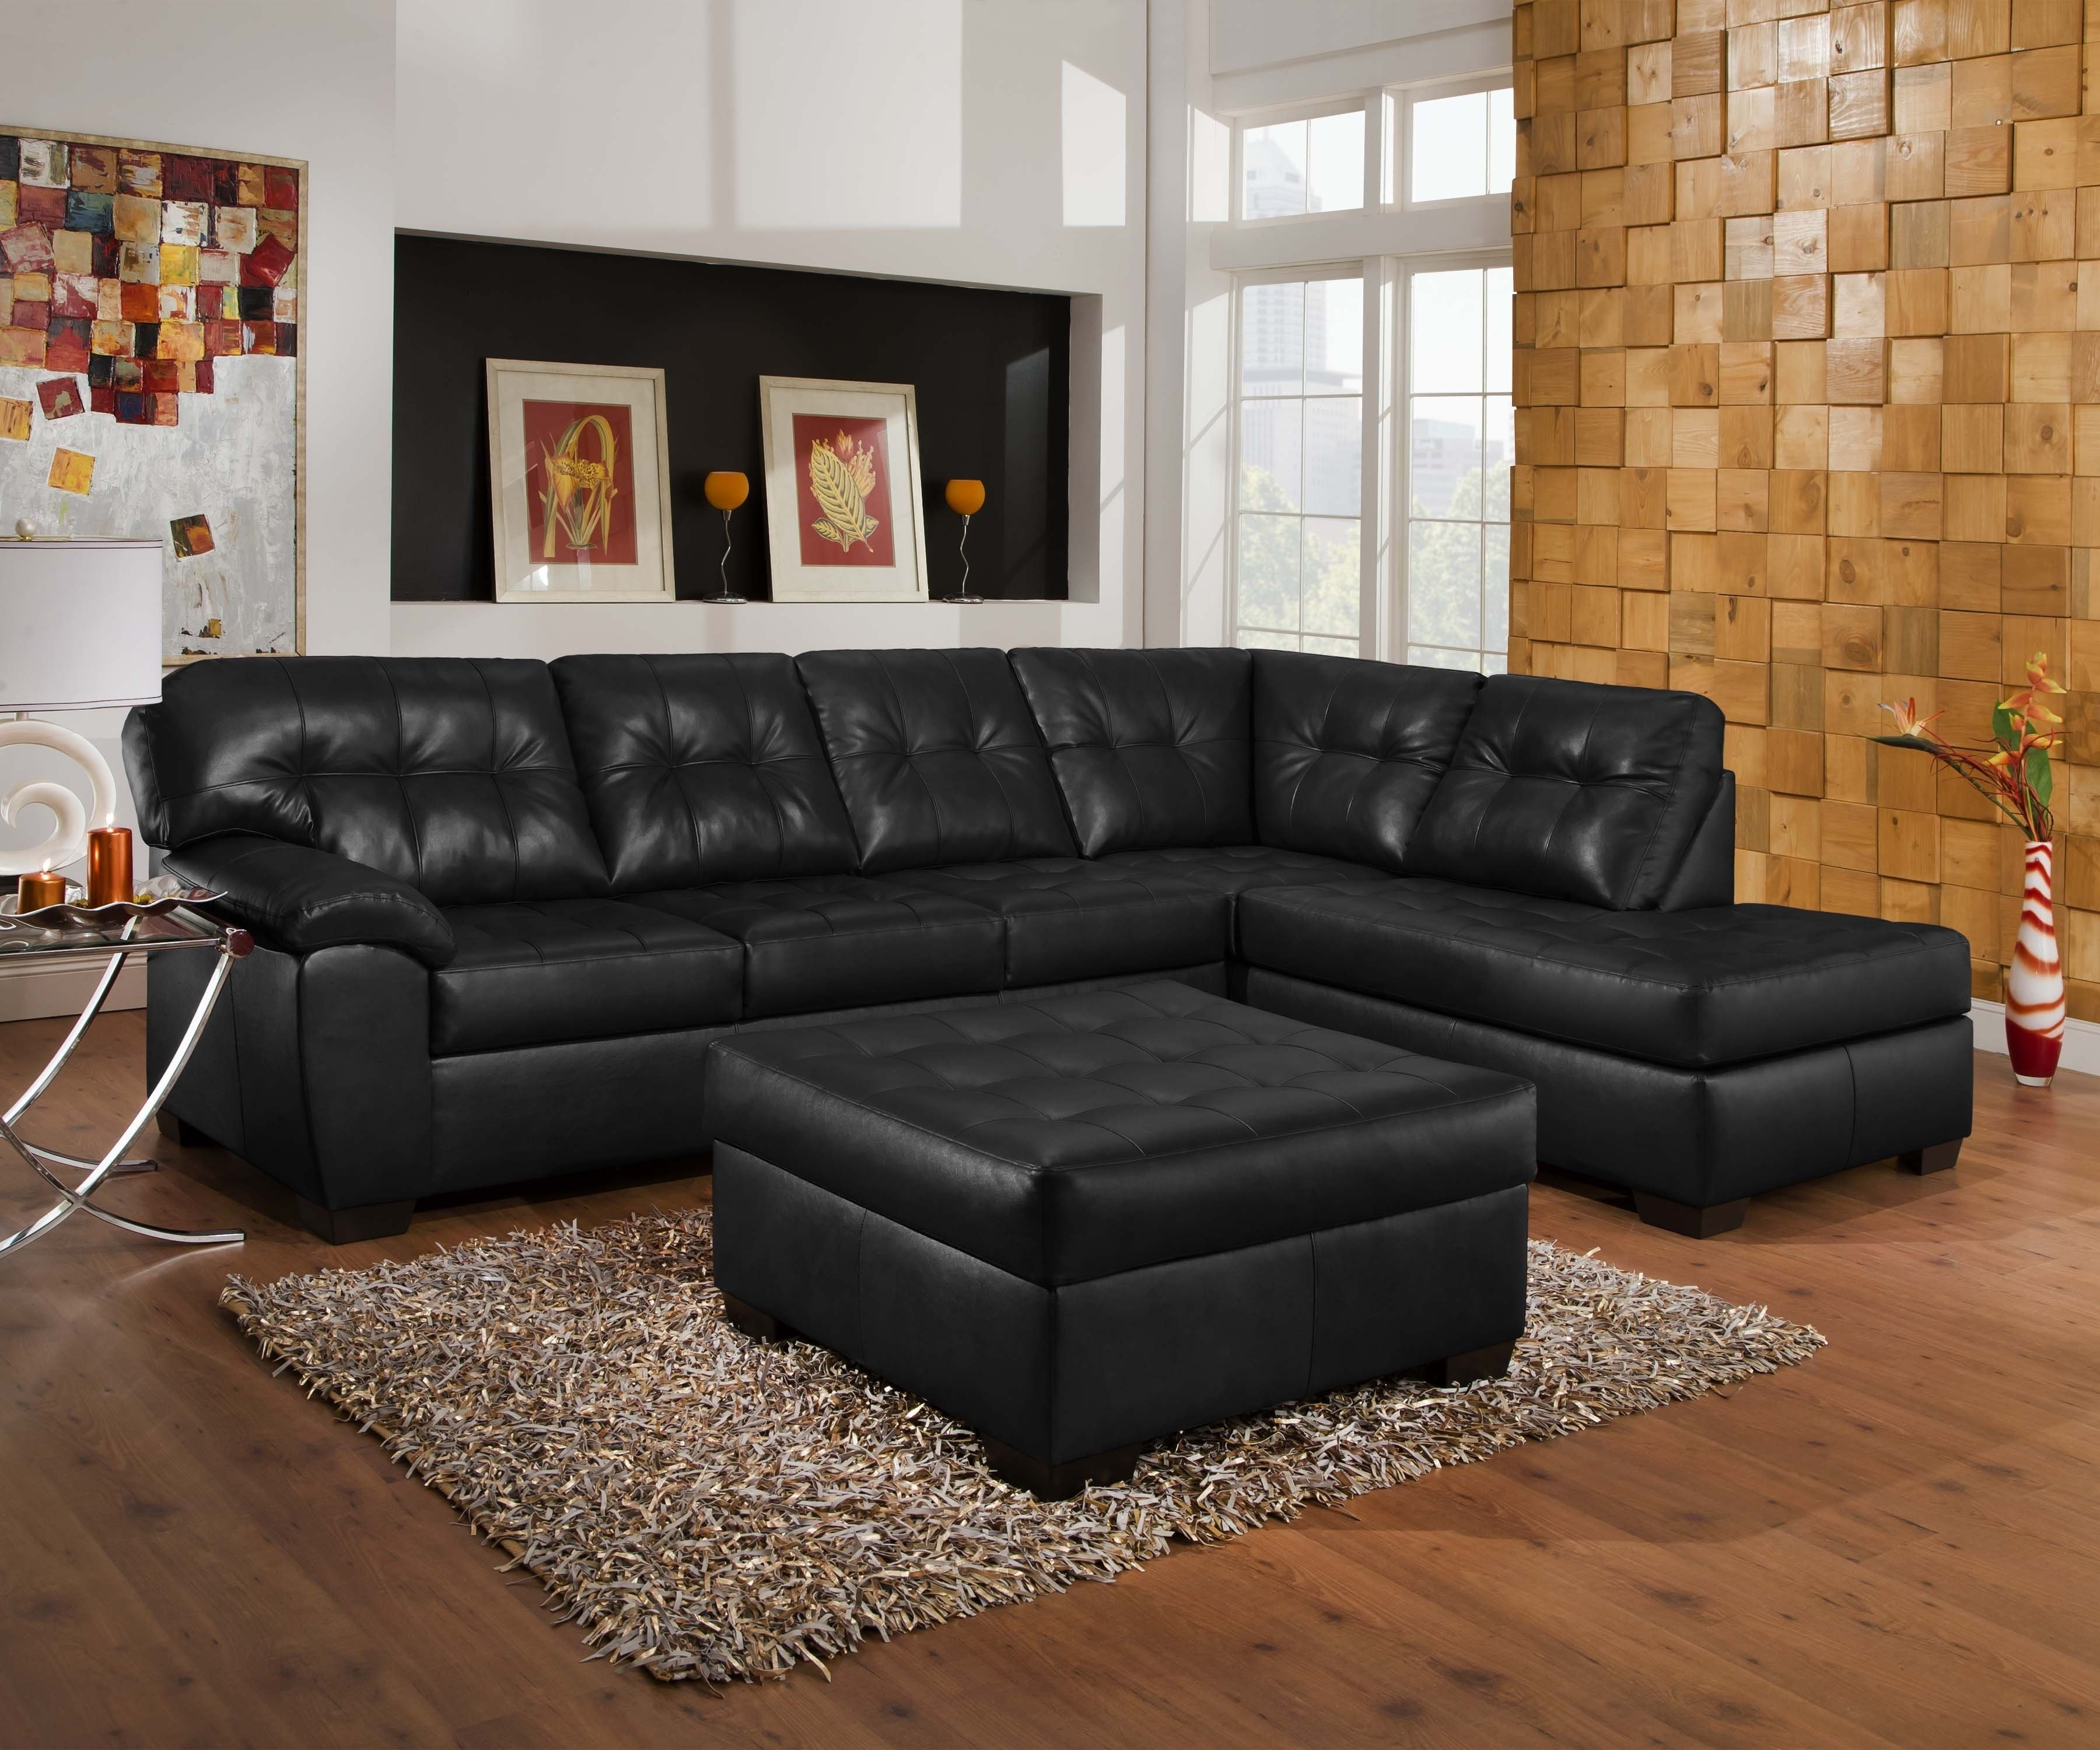 Most Popular Cheap Black Sofas Regarding Black Leather Contemporary Sectional Black And White Leather Sofa (View 10 of 15)